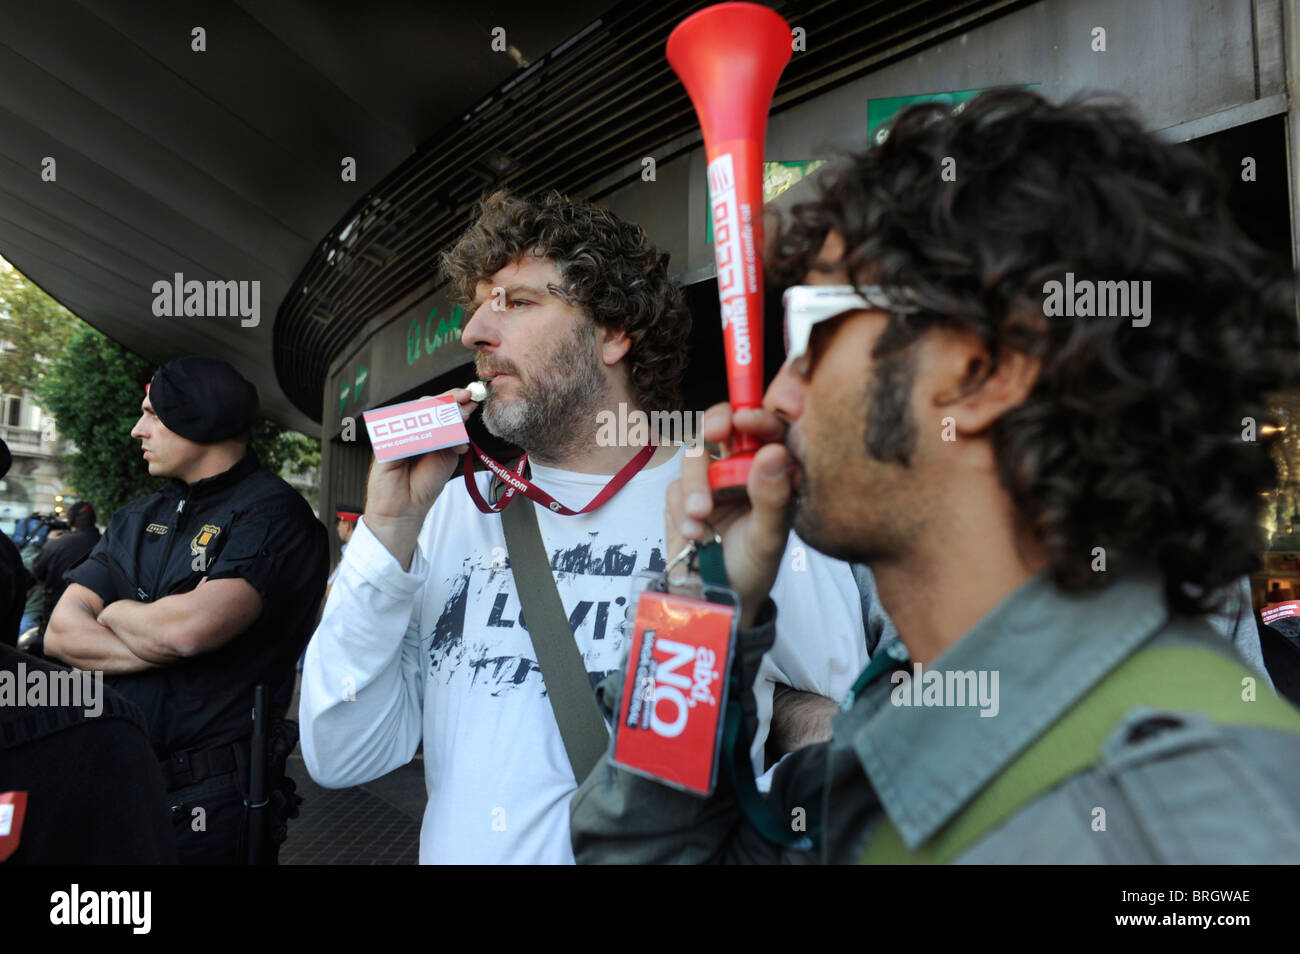 Barcelona,September, 29,2010.- Picket  during the strike  across Spain to protest the government labor reforms . - Stock Image